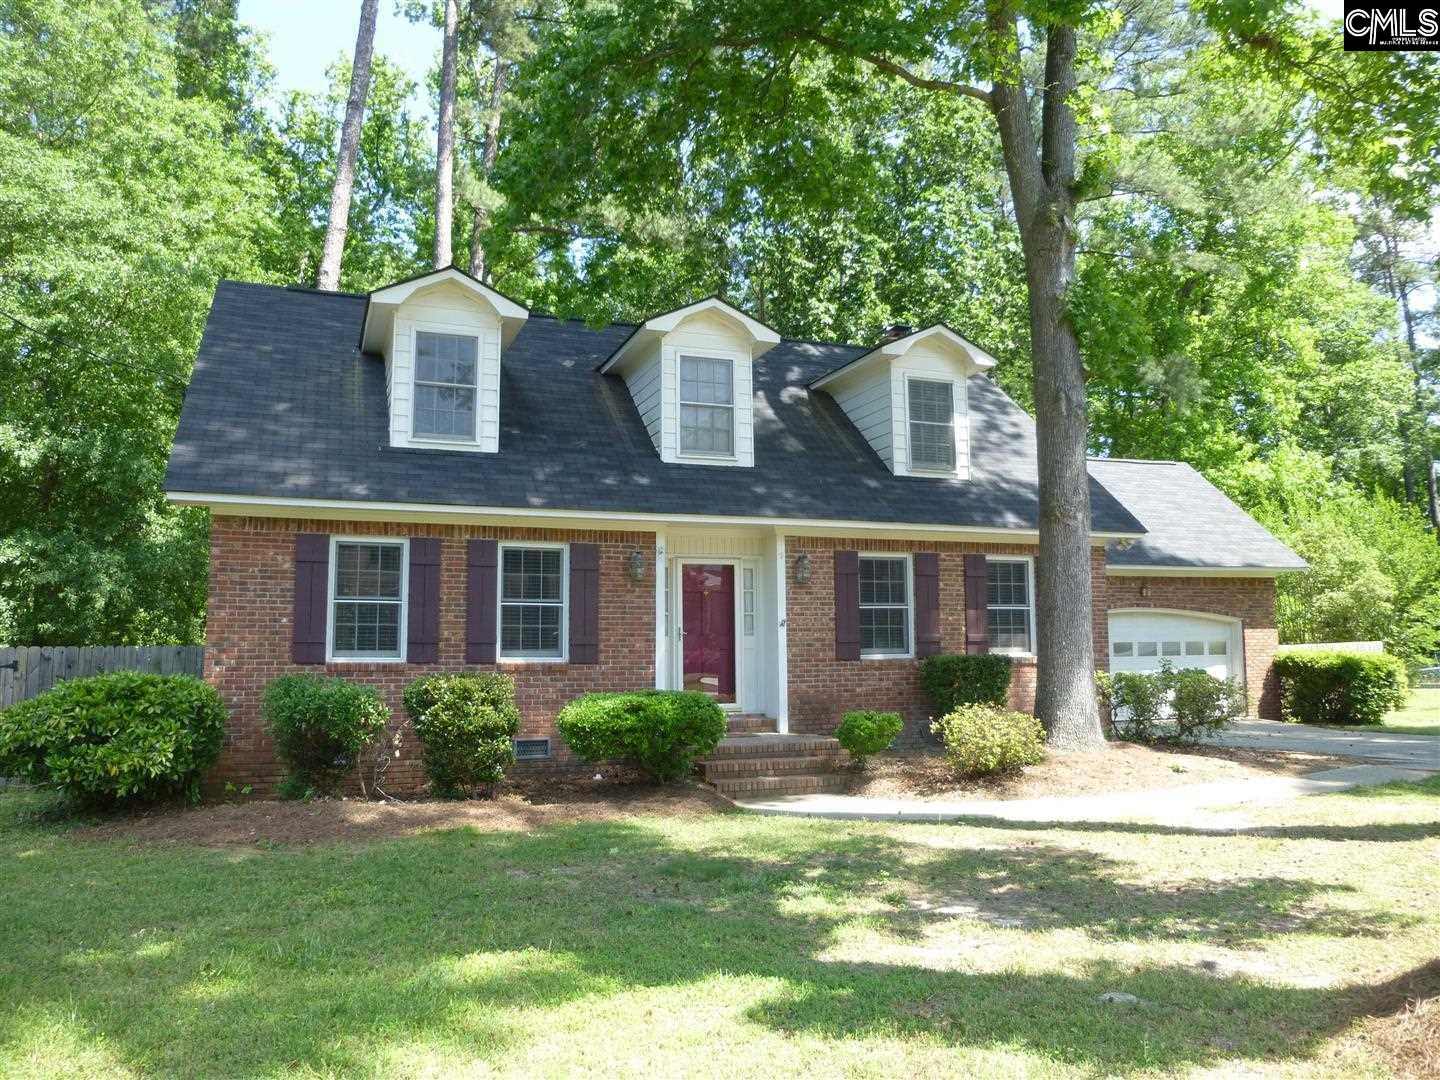 412 Hempsted Columbia, SC 29210